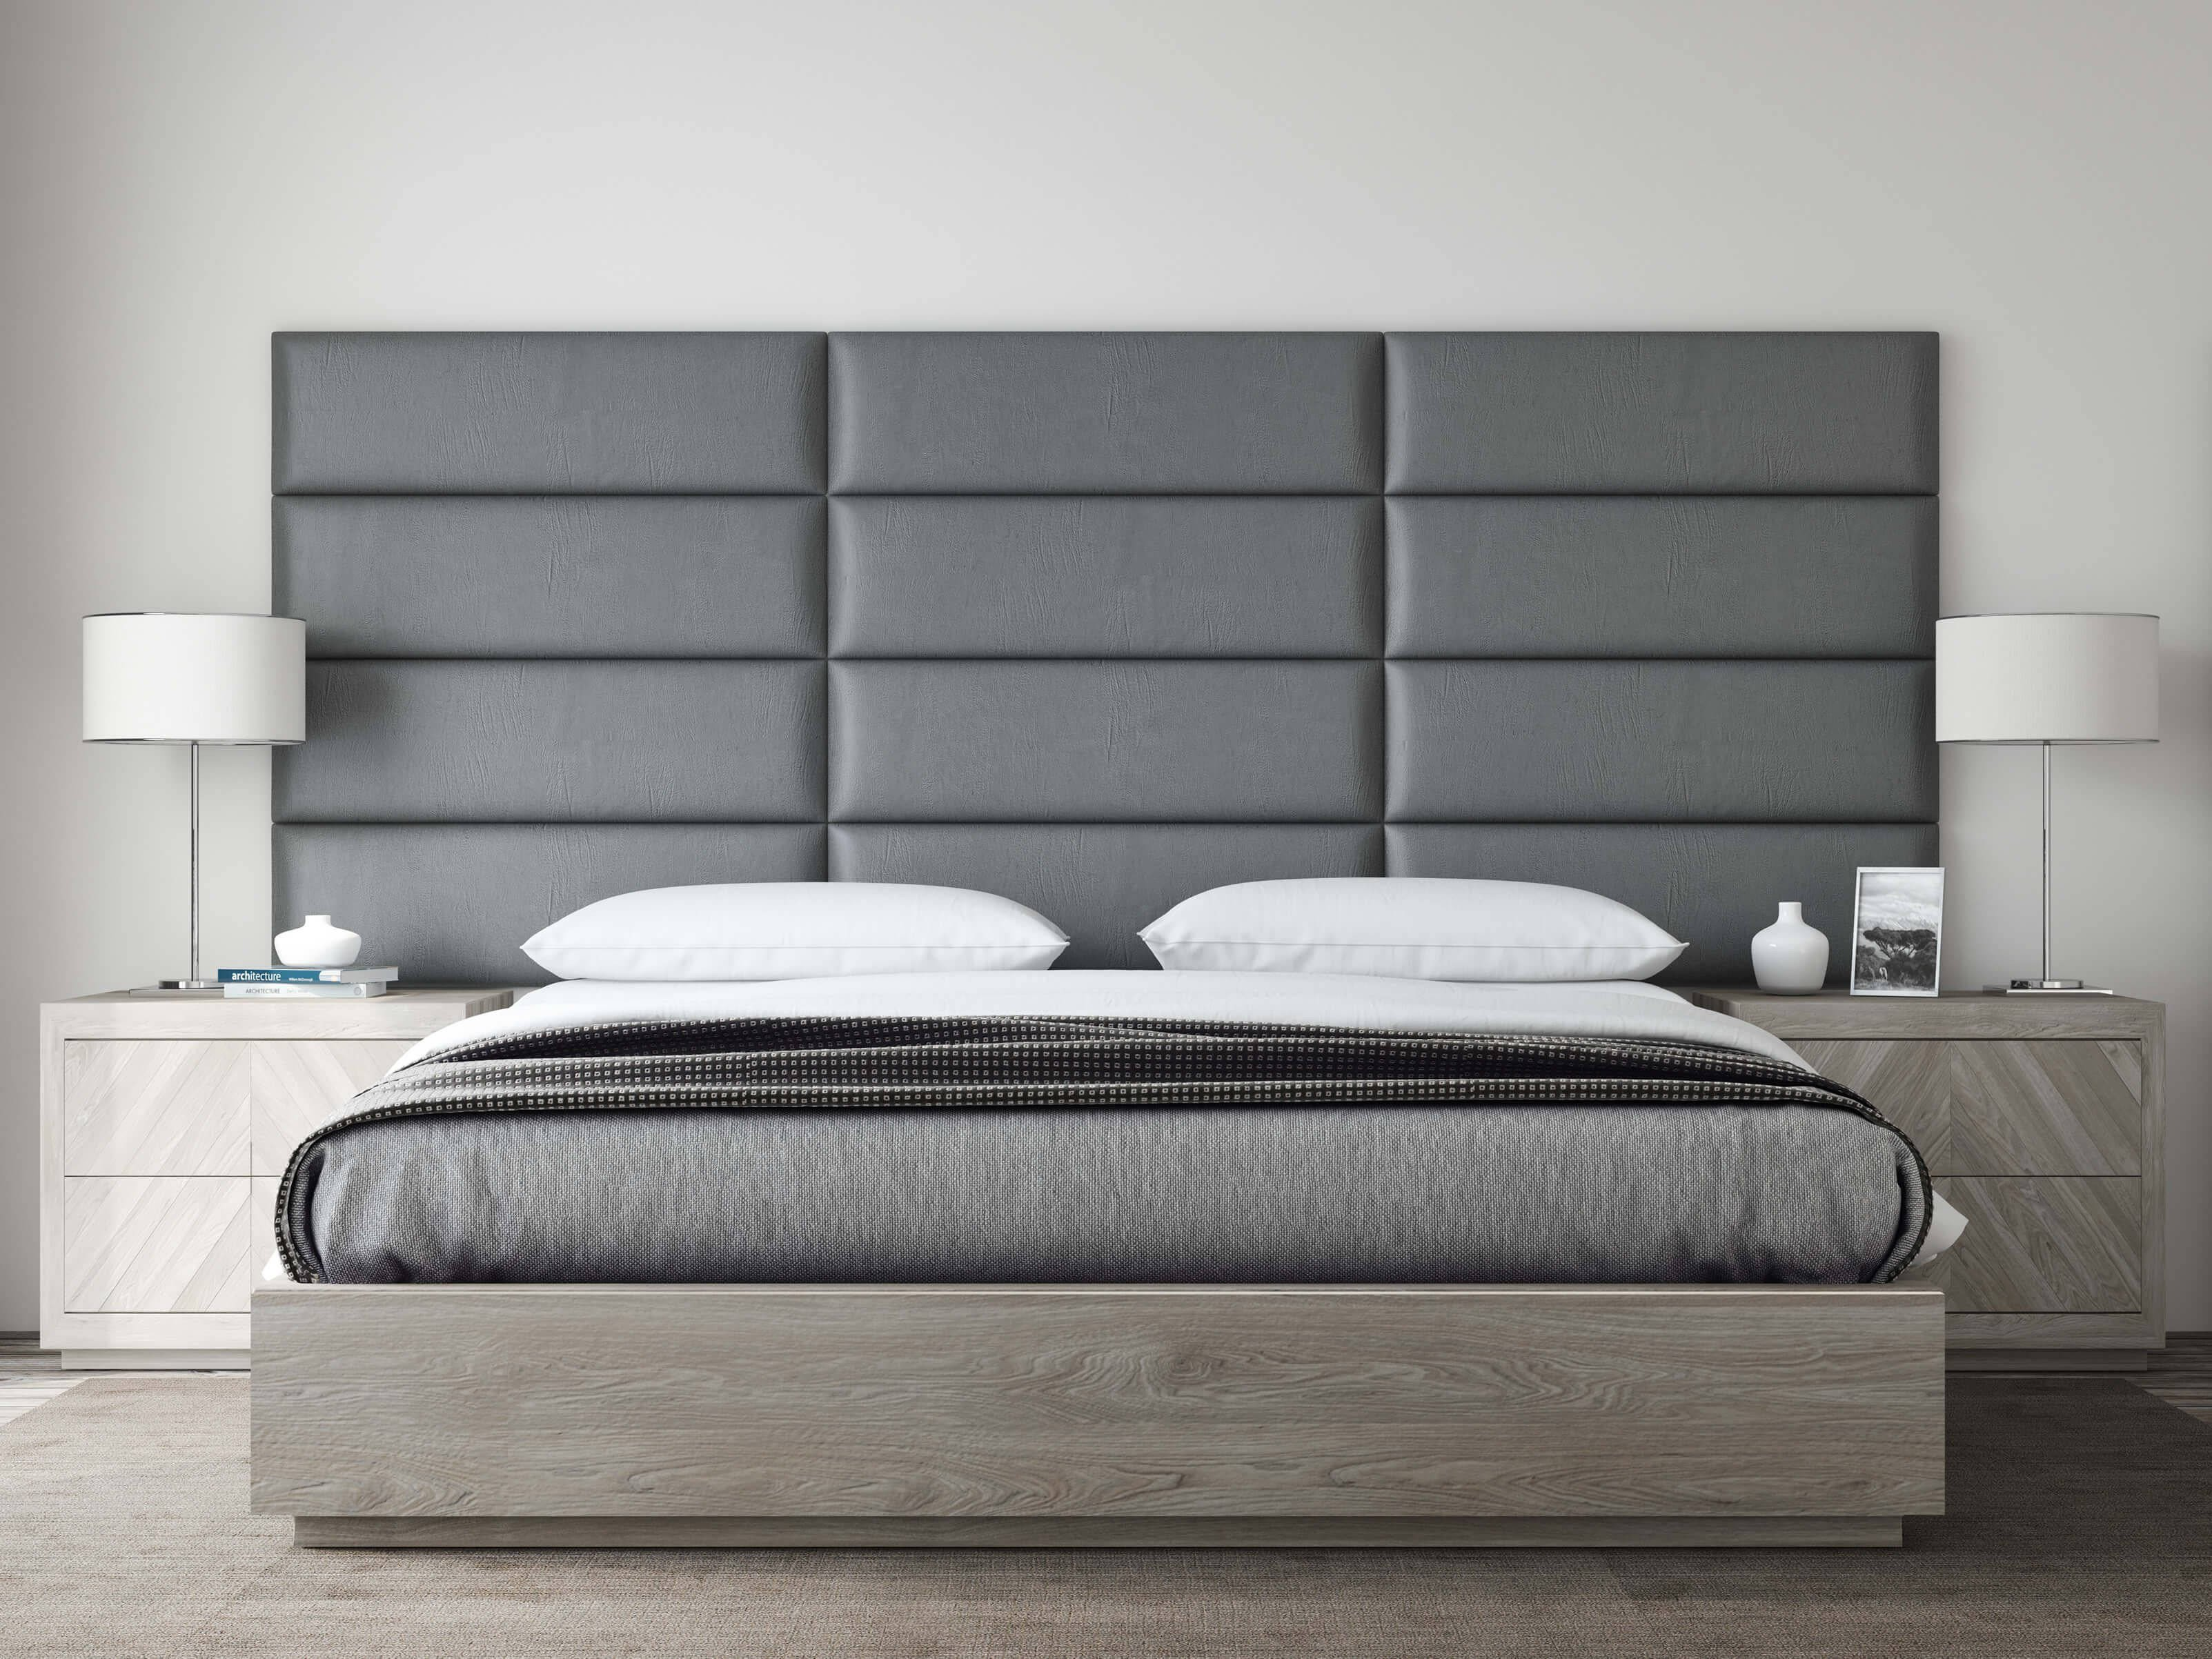 Jennifer Convertibles Bedroom Set Unique Vant Panels Vintage Leather Gray Pewter King or Full Wall Panels 117 X 46